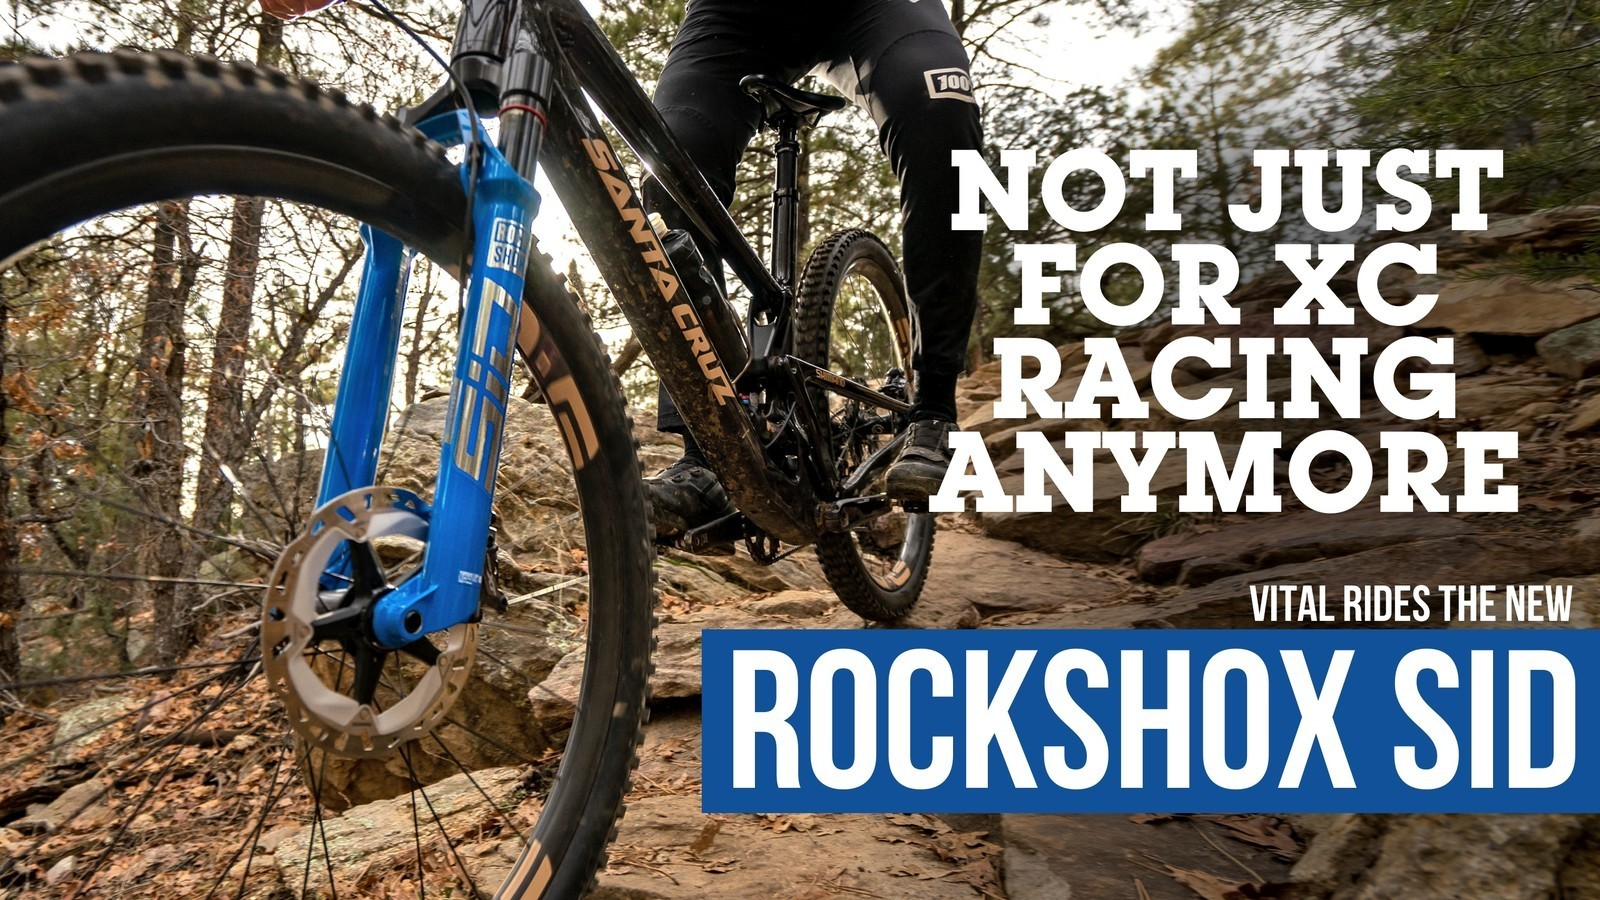 We Ride the All-New RockShox SID Ultimate